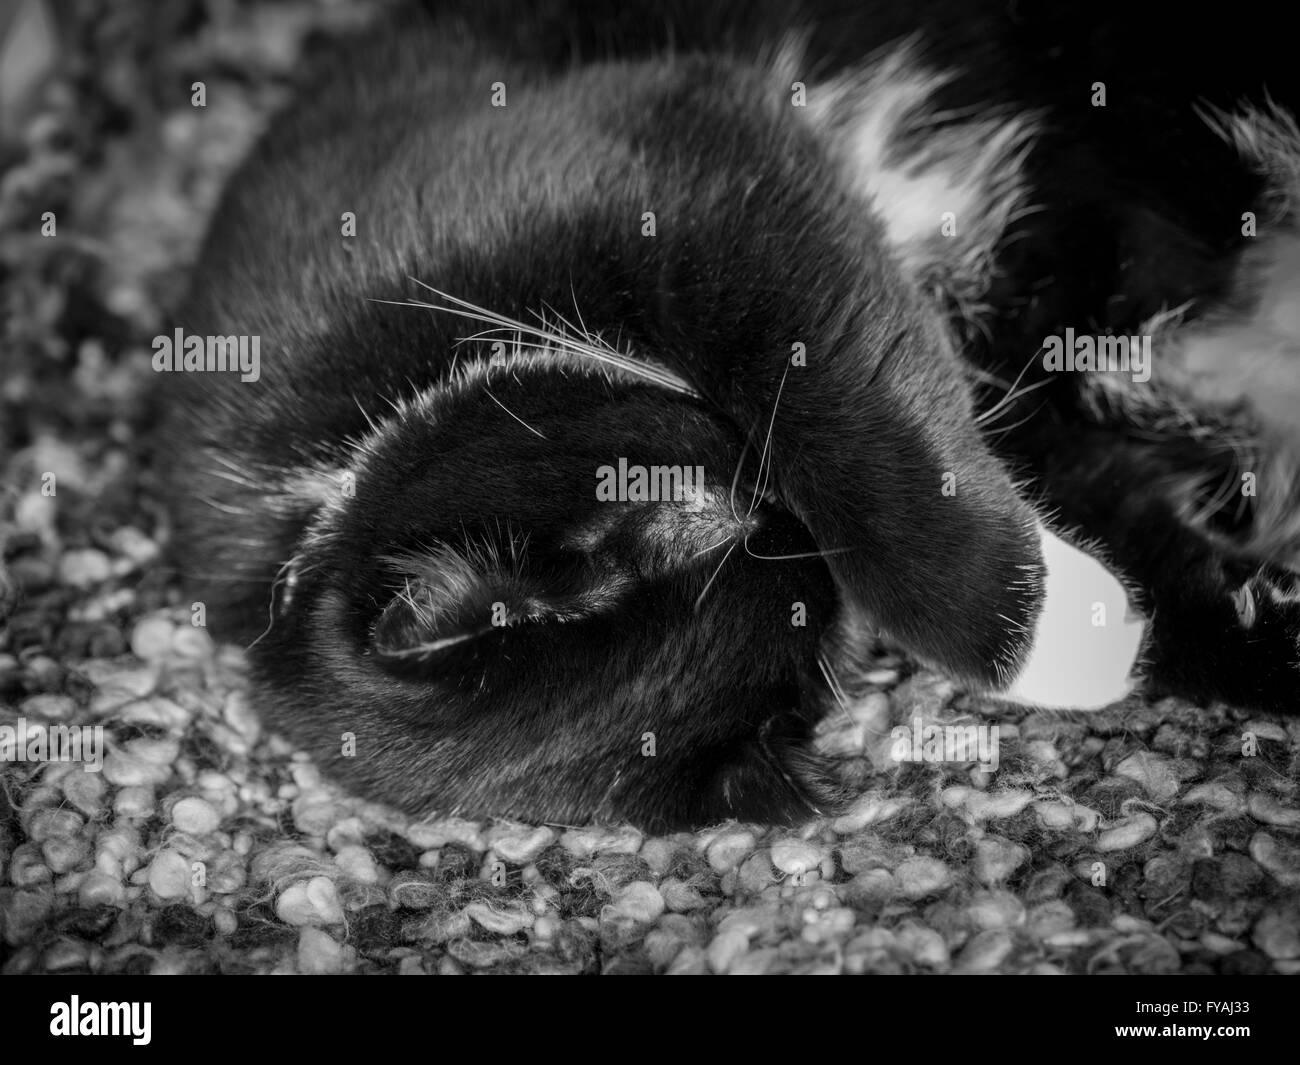 Black and white cat hiding it's face with paw - Stock Image